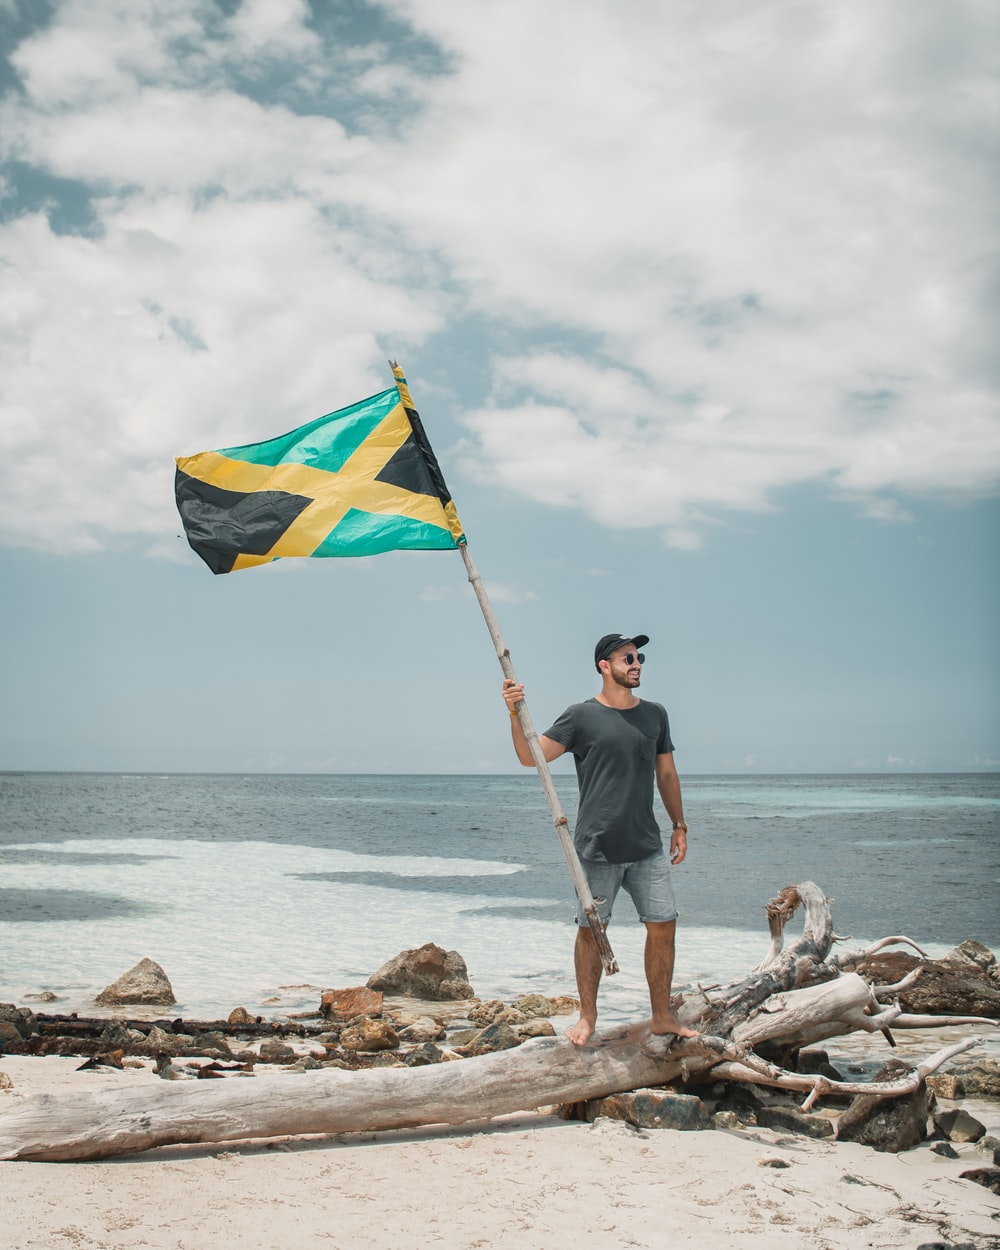 man in blue t-shirt holding flag standing on brown rock near body of water during